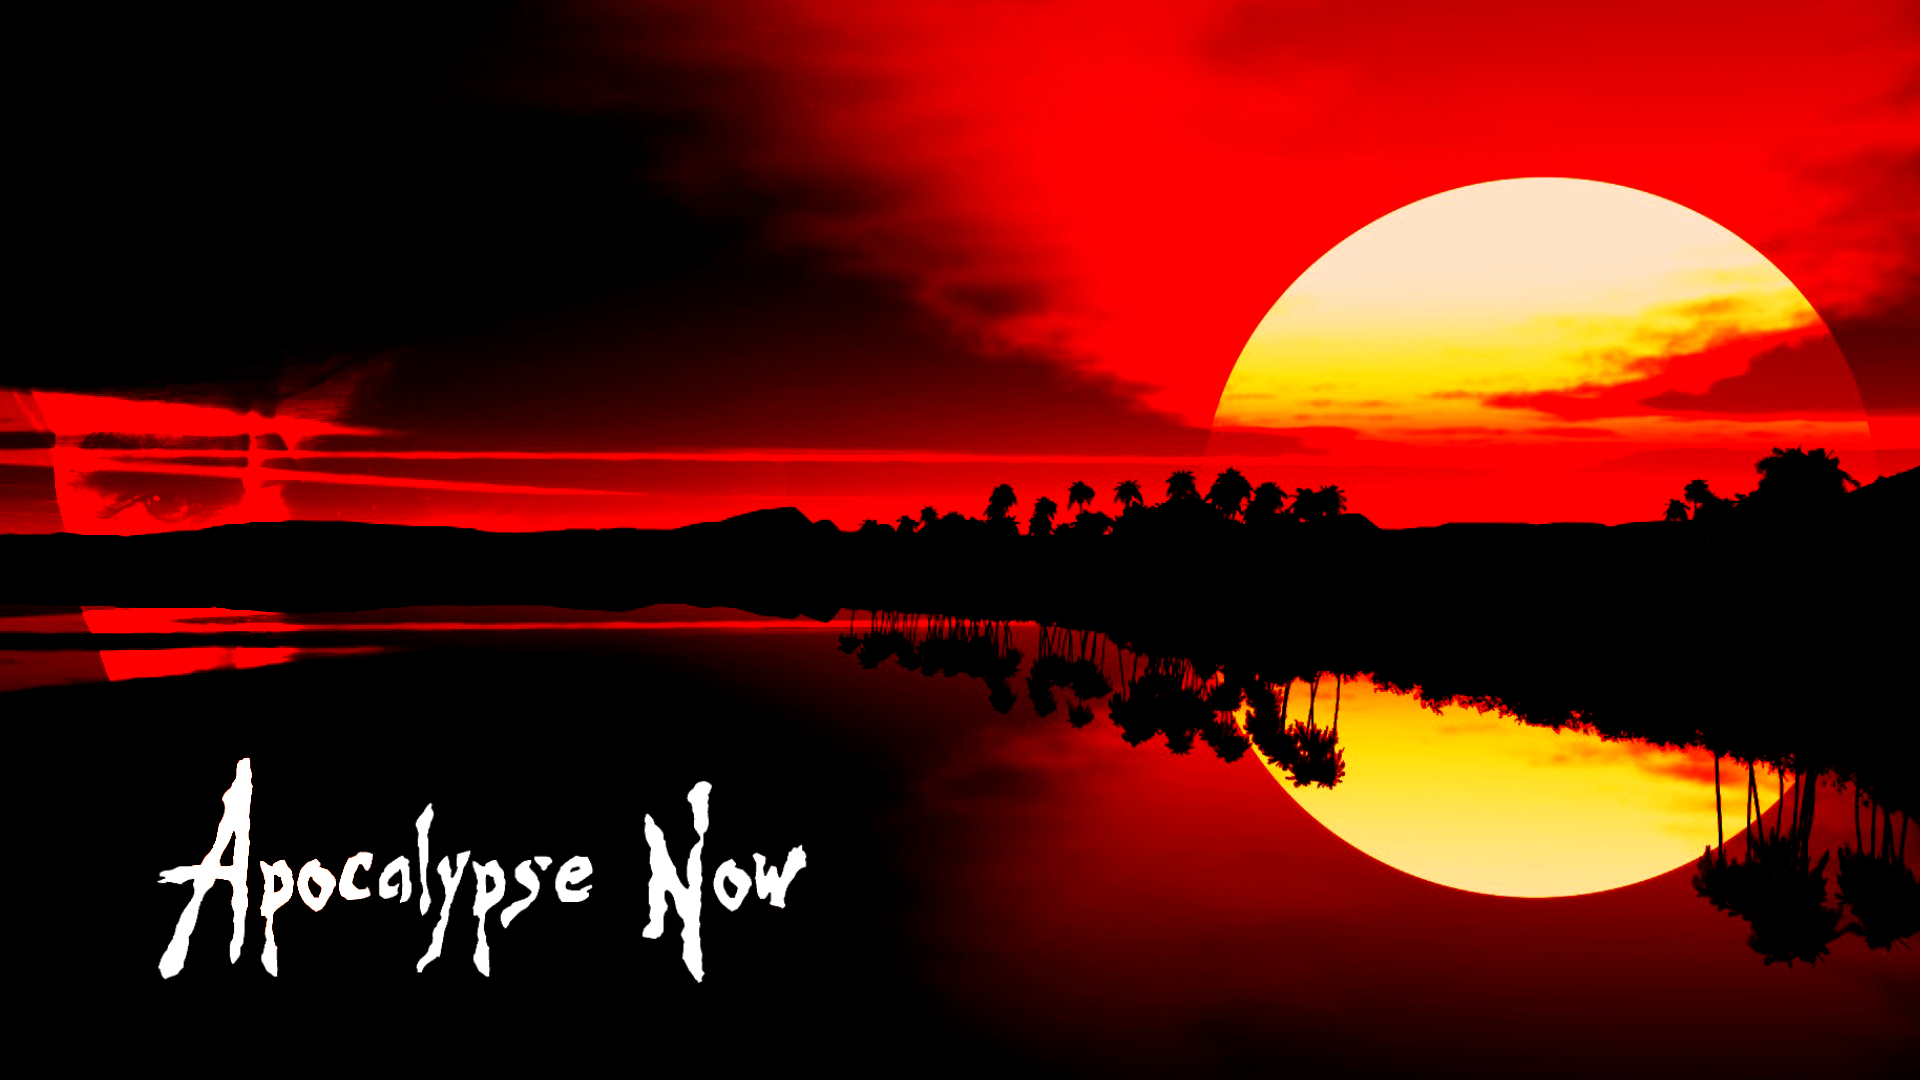 Apocalypse Now Wallpaper galleryhipcom   The Hippest 1920x1080